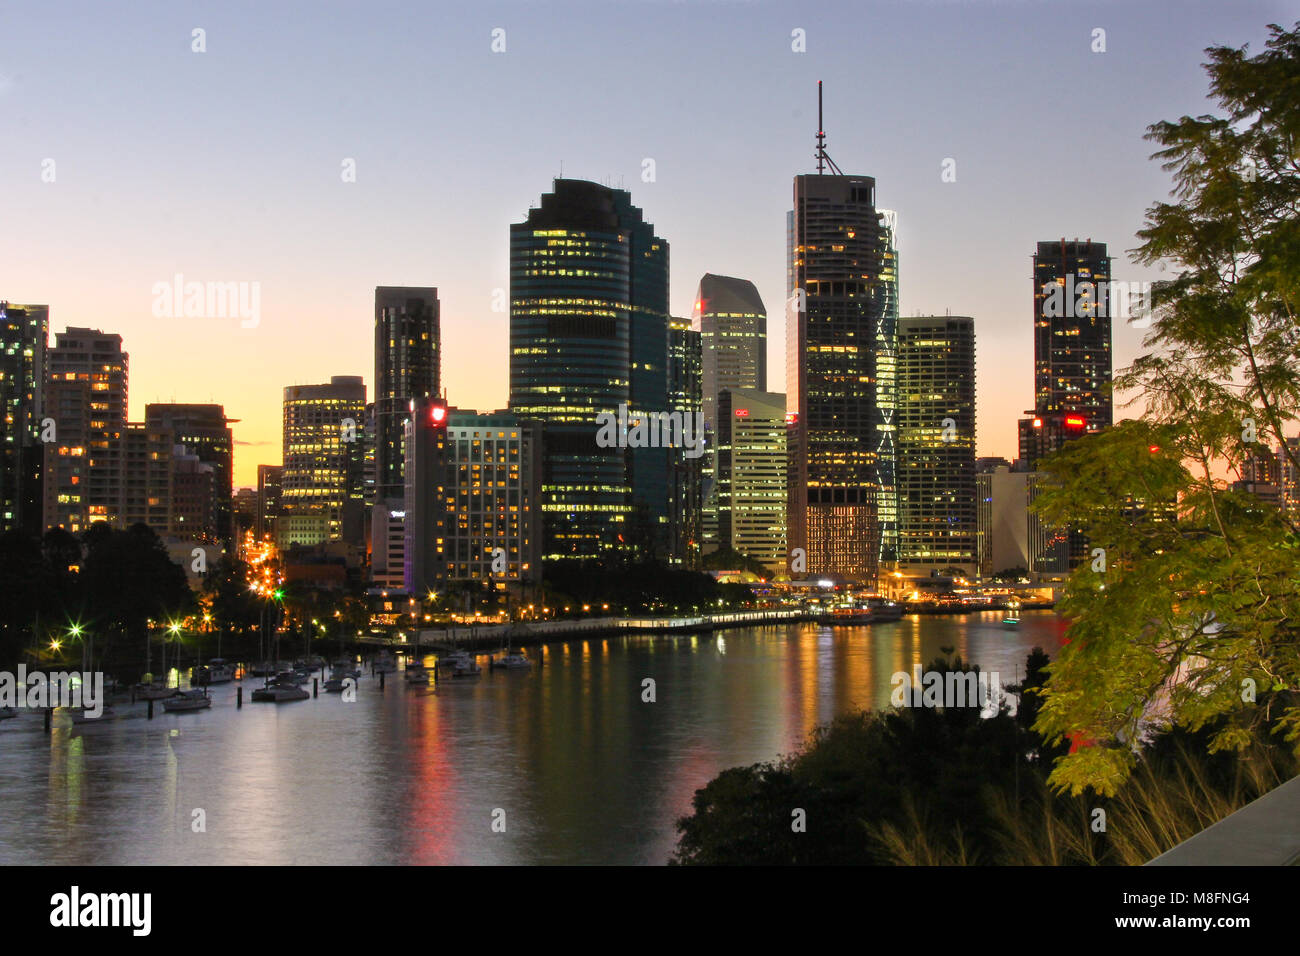 Brisbane city photographed from kangaroo's point on the Brisbane river - Stock Image